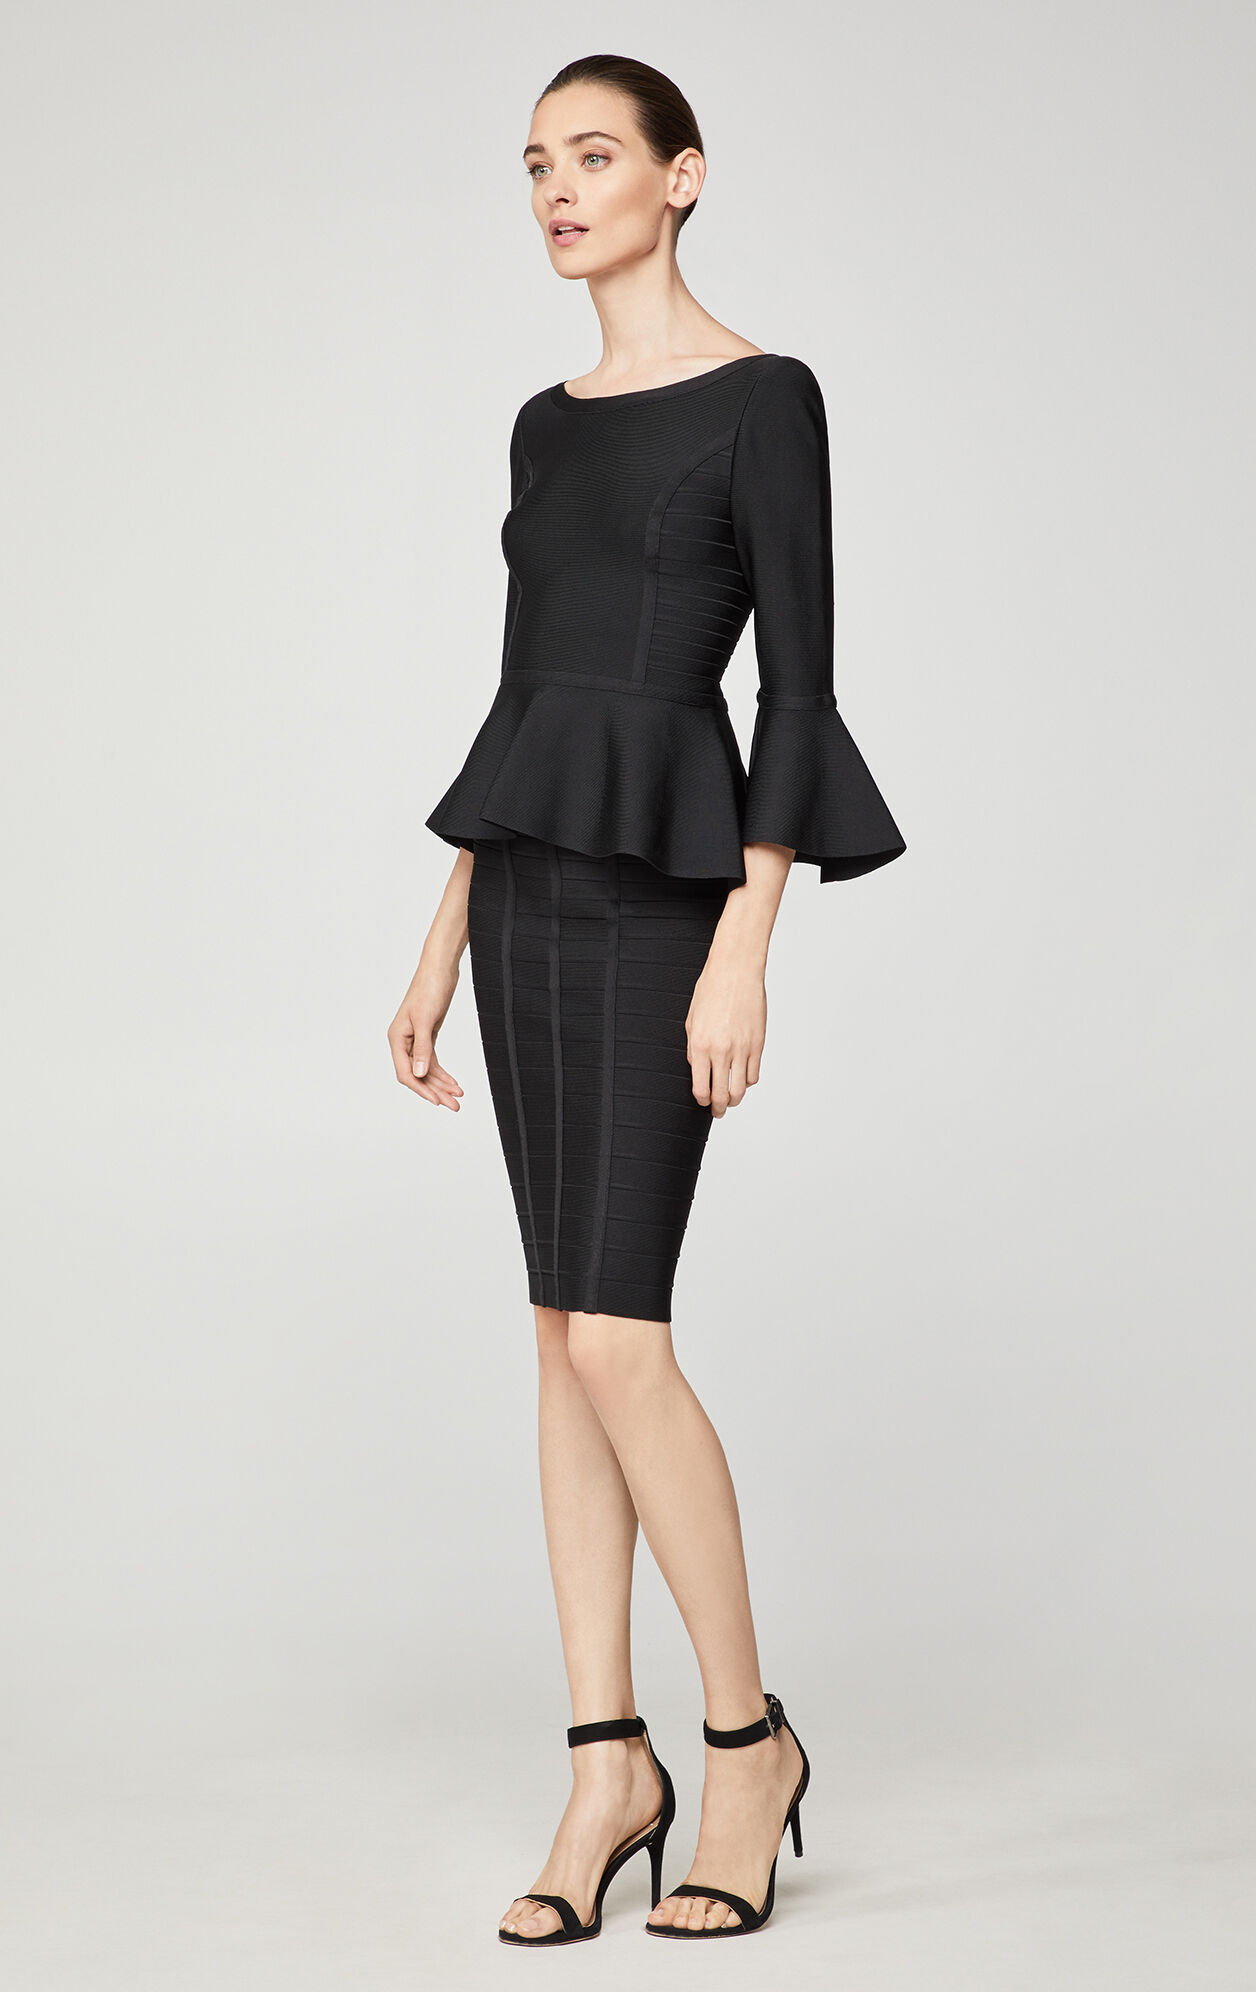 Sia Signature Essentials Bandage Skirt